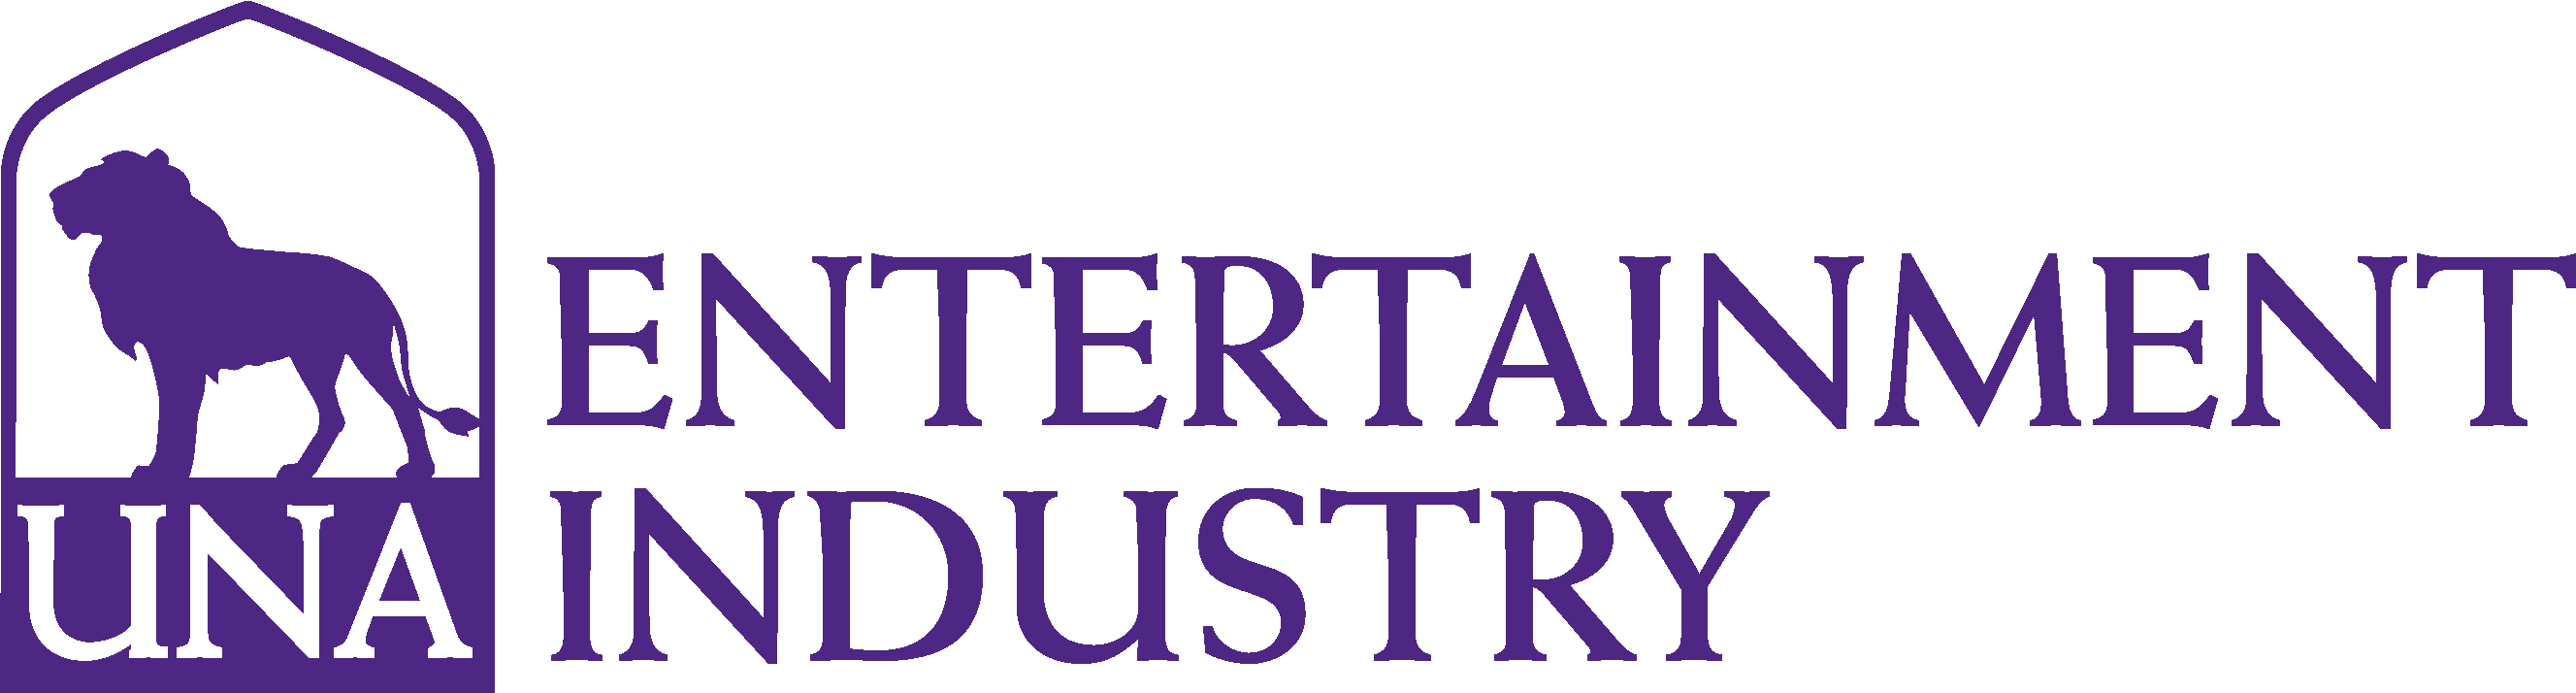 College of Arts and Sciences - Entertainment Industry Logo - Purple - Version 3